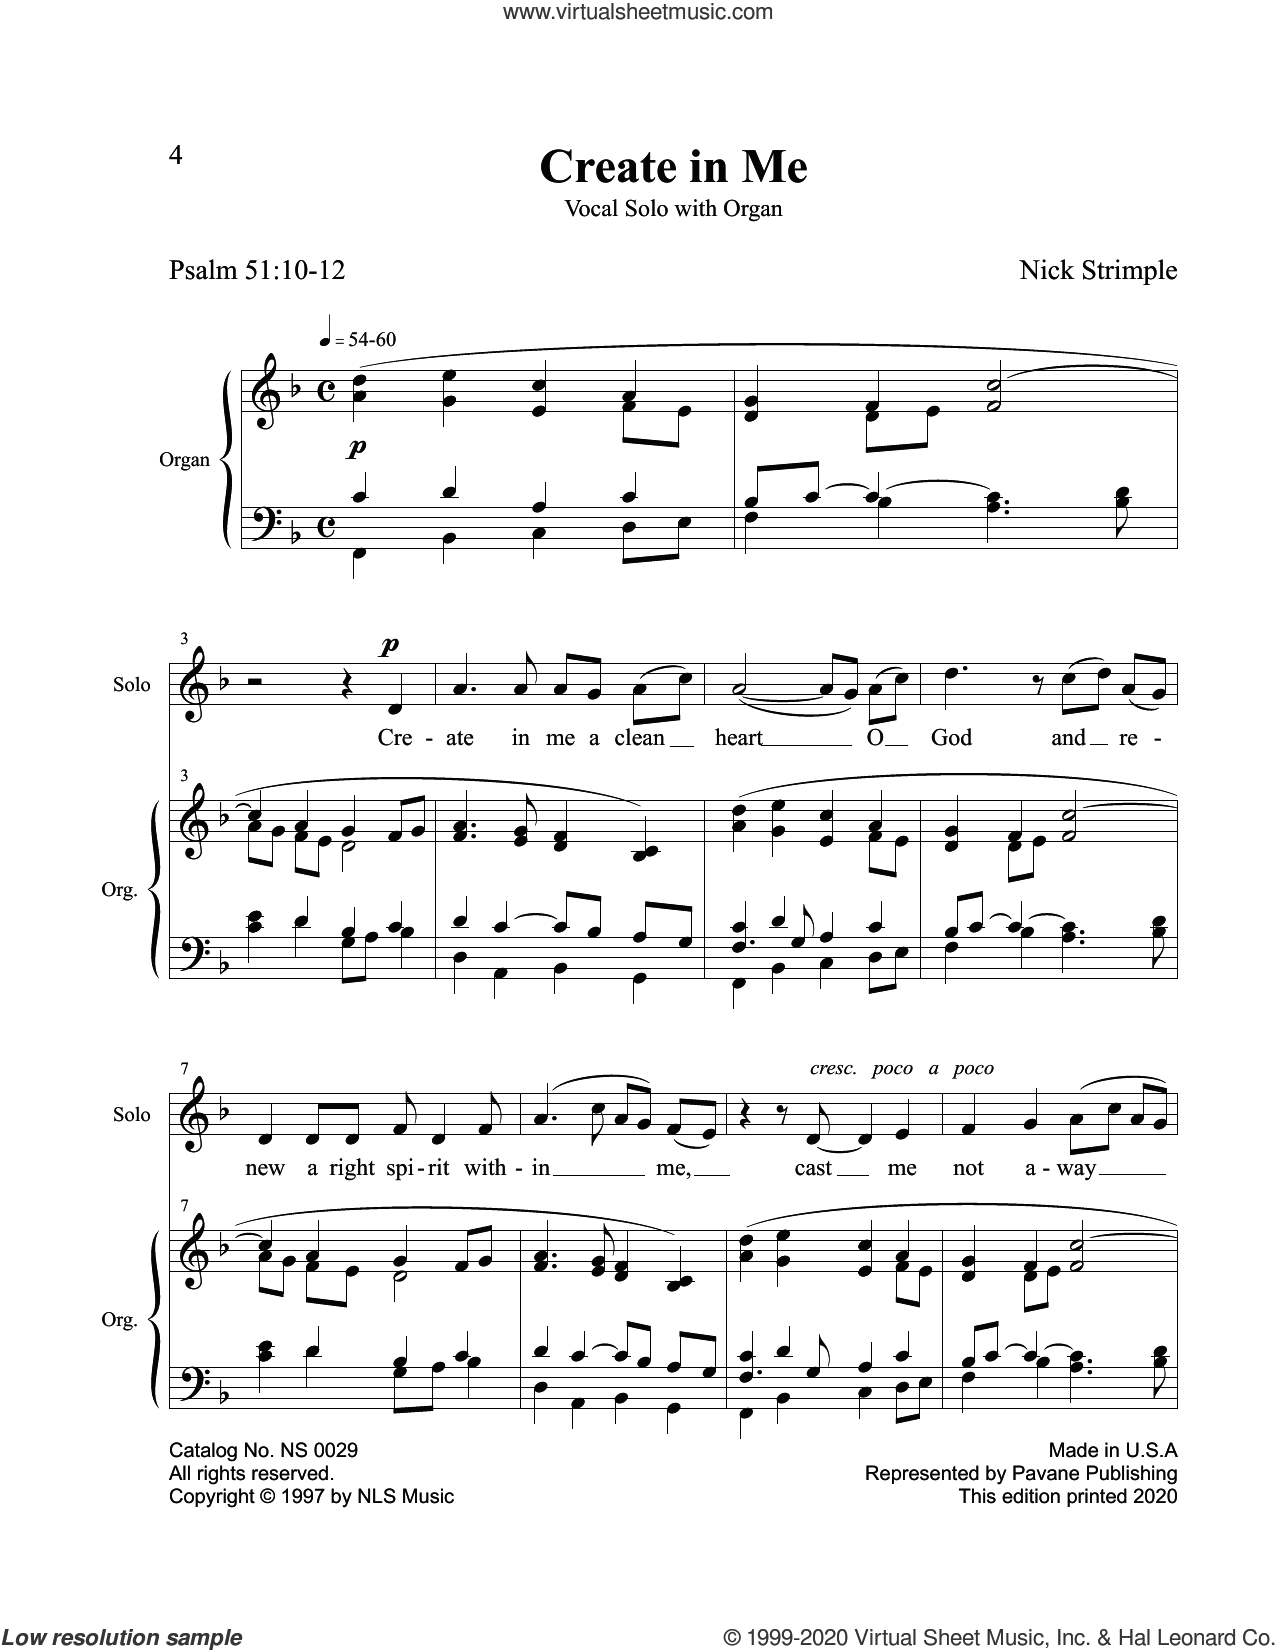 Create In Me sheet music for voice and piano by Nick Strimple and Psalm 51, intermediate skill level